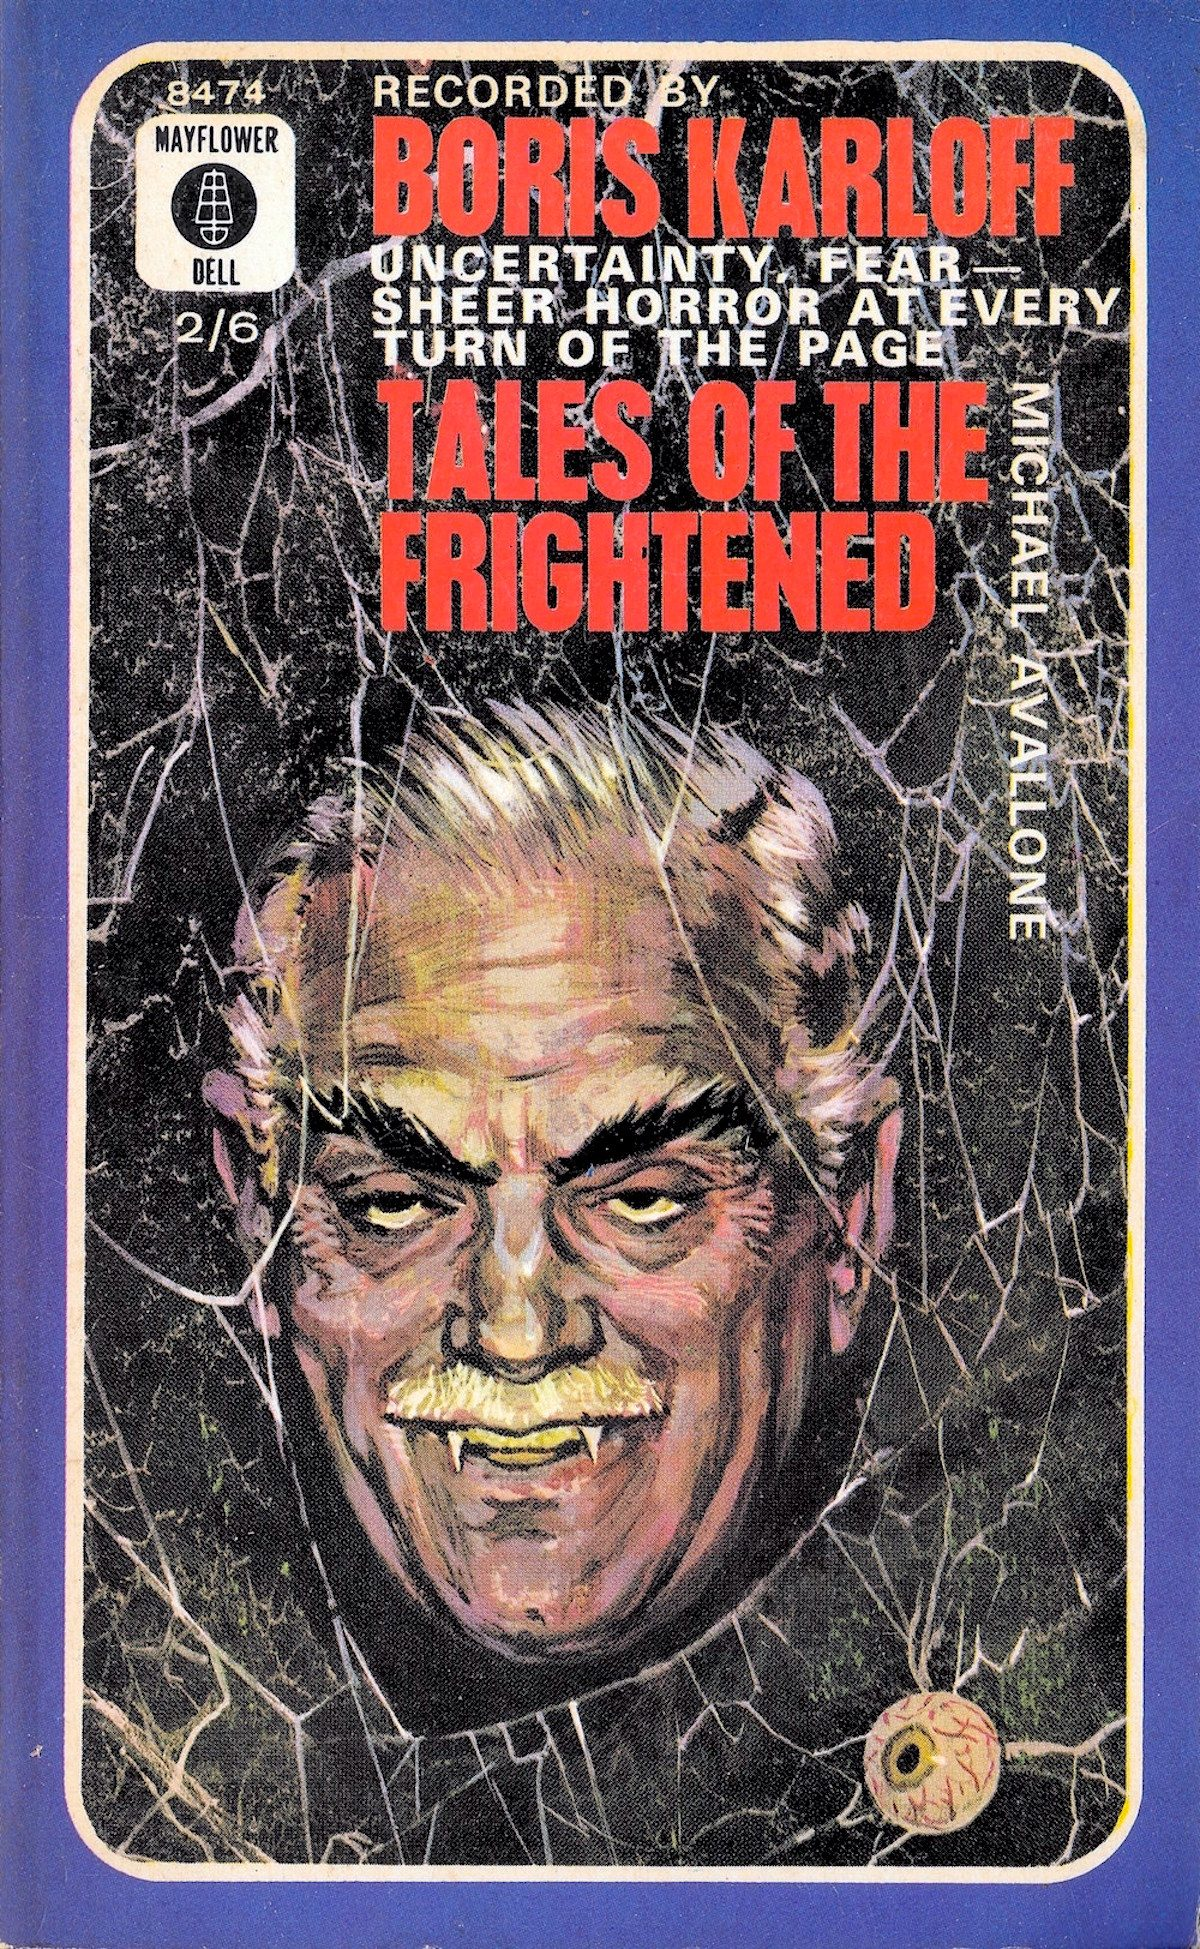 Boris Karloff, Tales of the Frightened, book